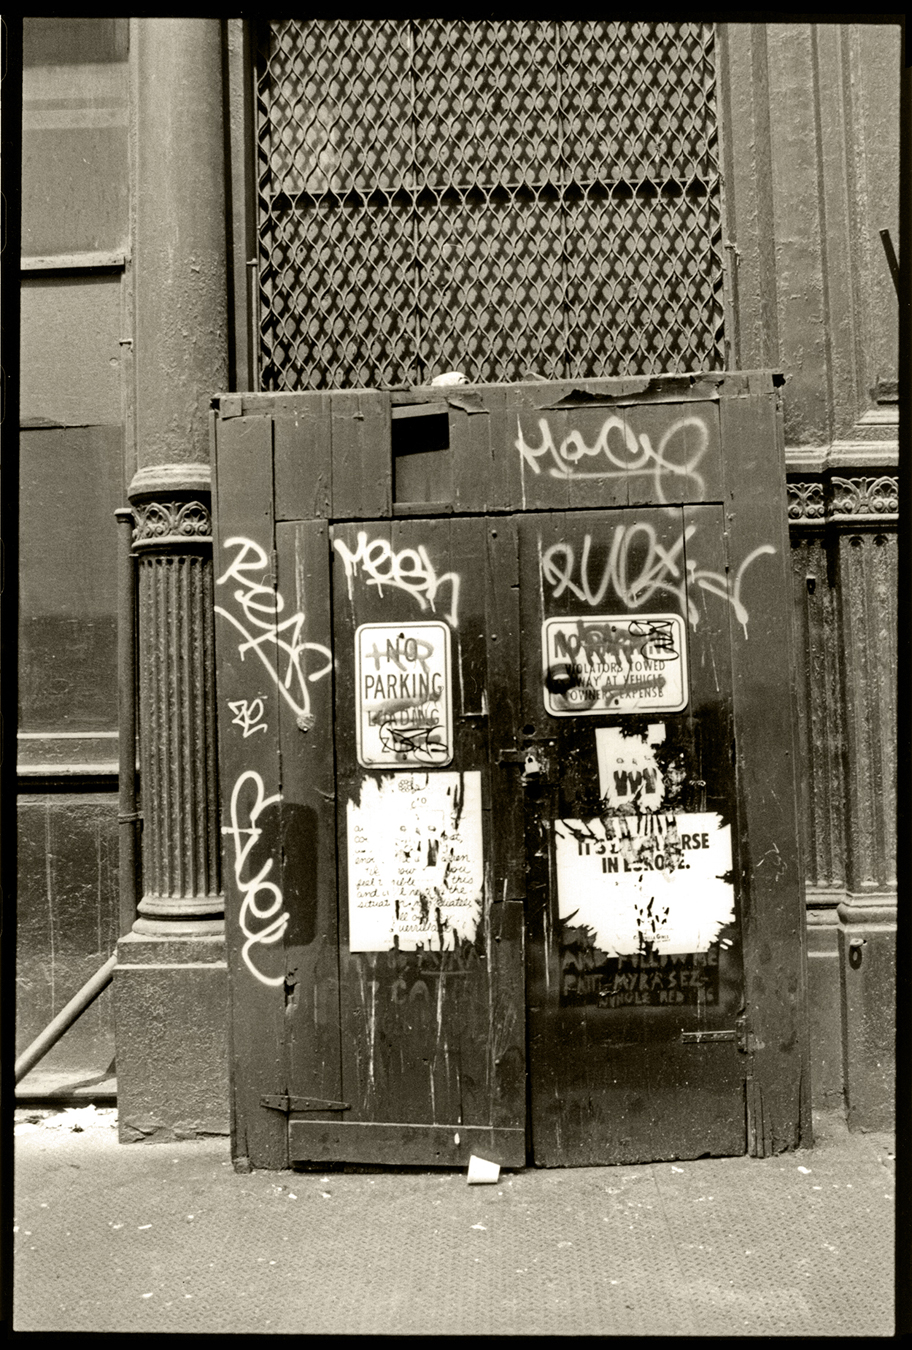 Freight entrance to 112 Greene Street, 1980s (photo: Joseph Pell Lombardi)